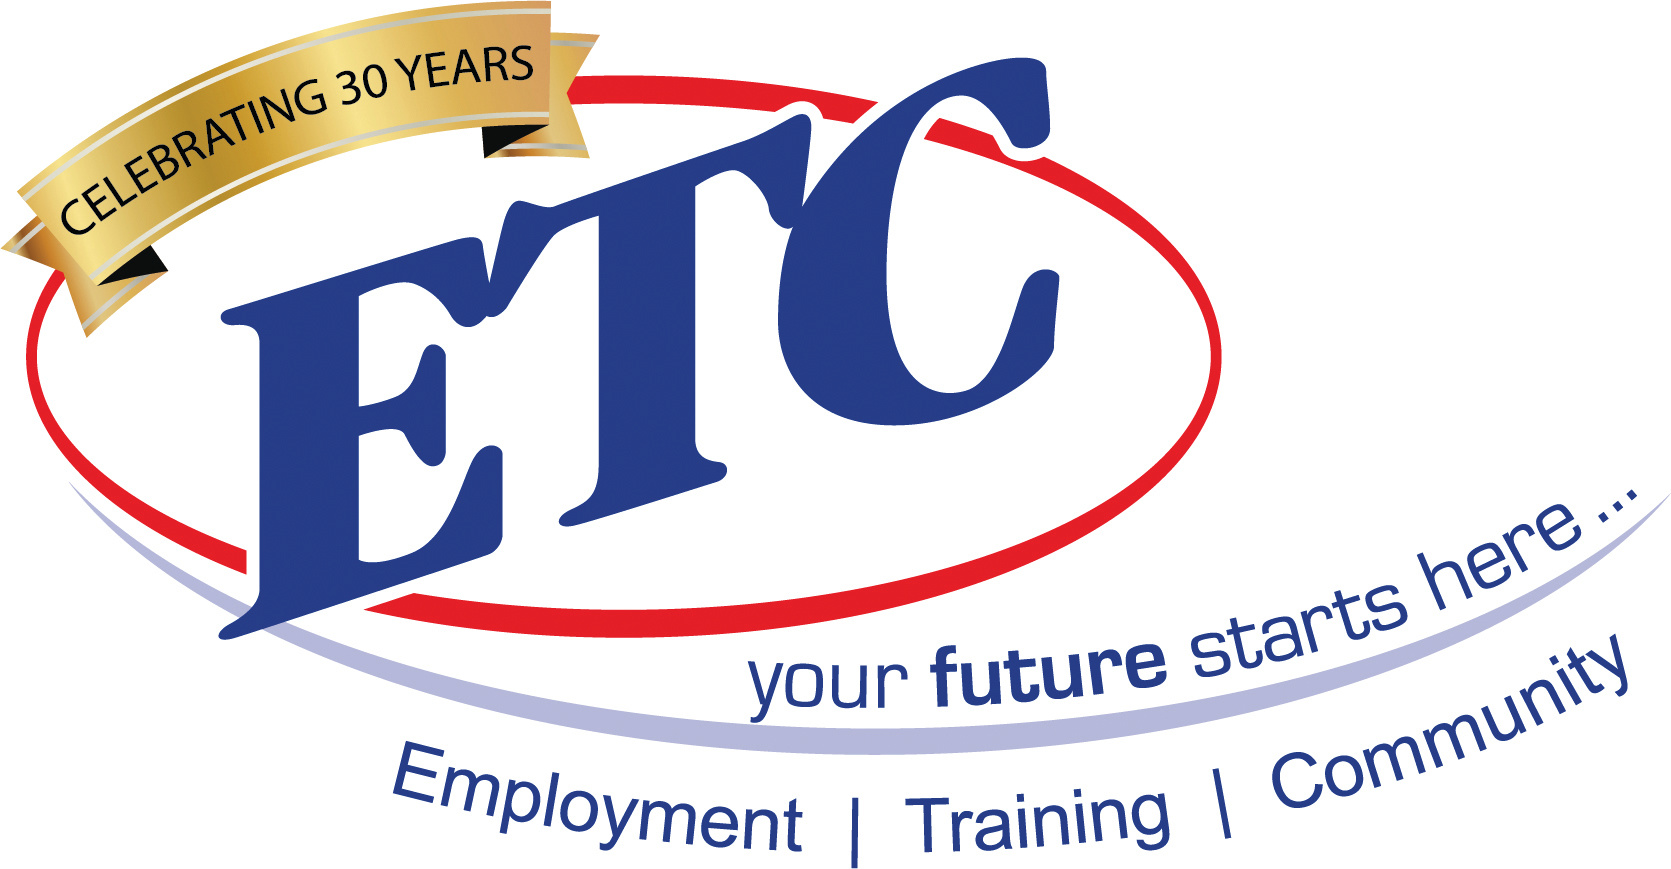 ETC Logo 2015 - 30 years - PRINT